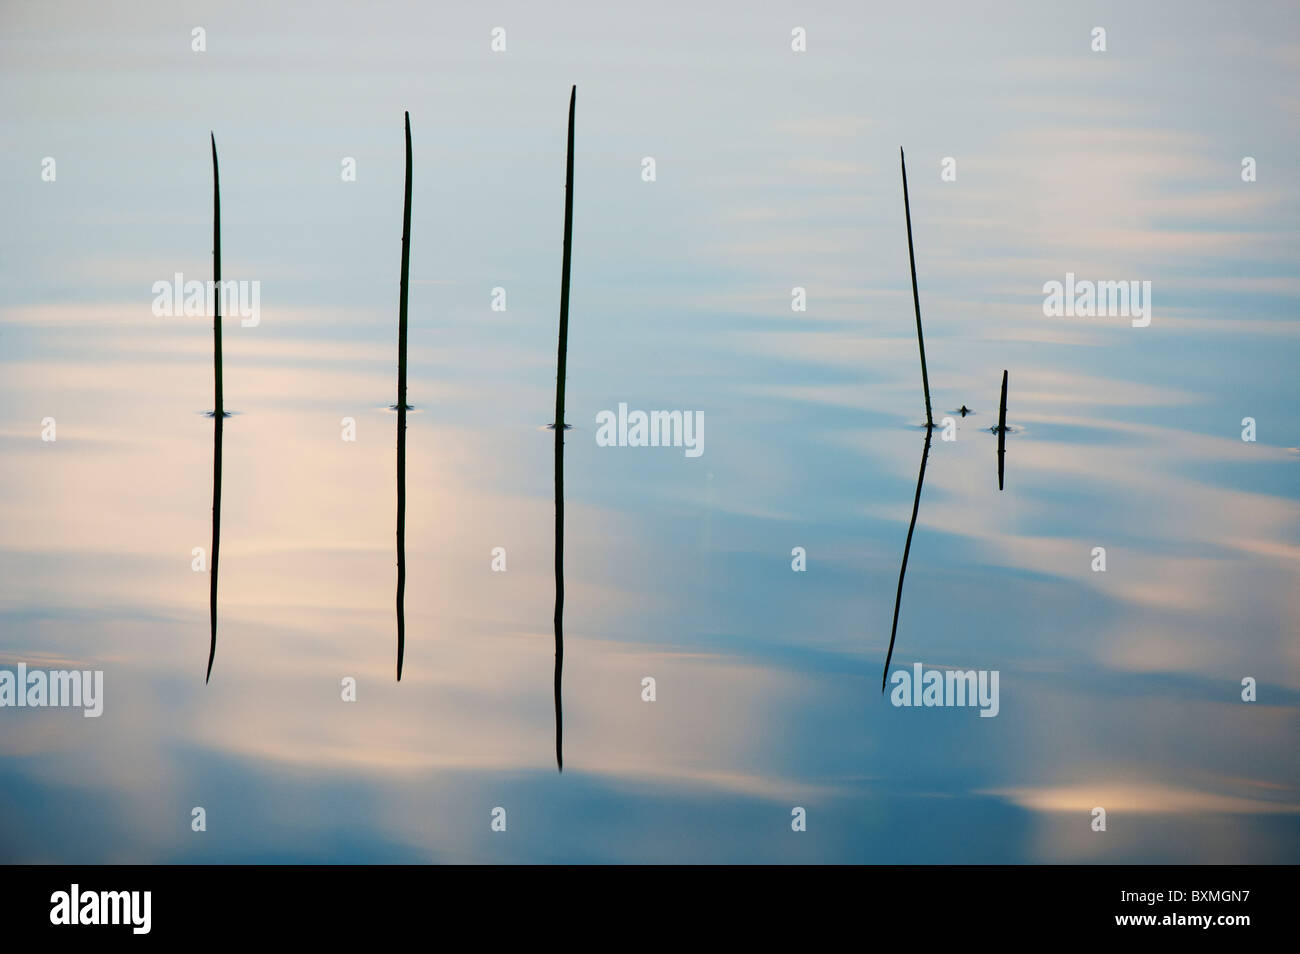 Silhouette Grass stems reflecting in a rippling pool at dawn in india - Stock Image